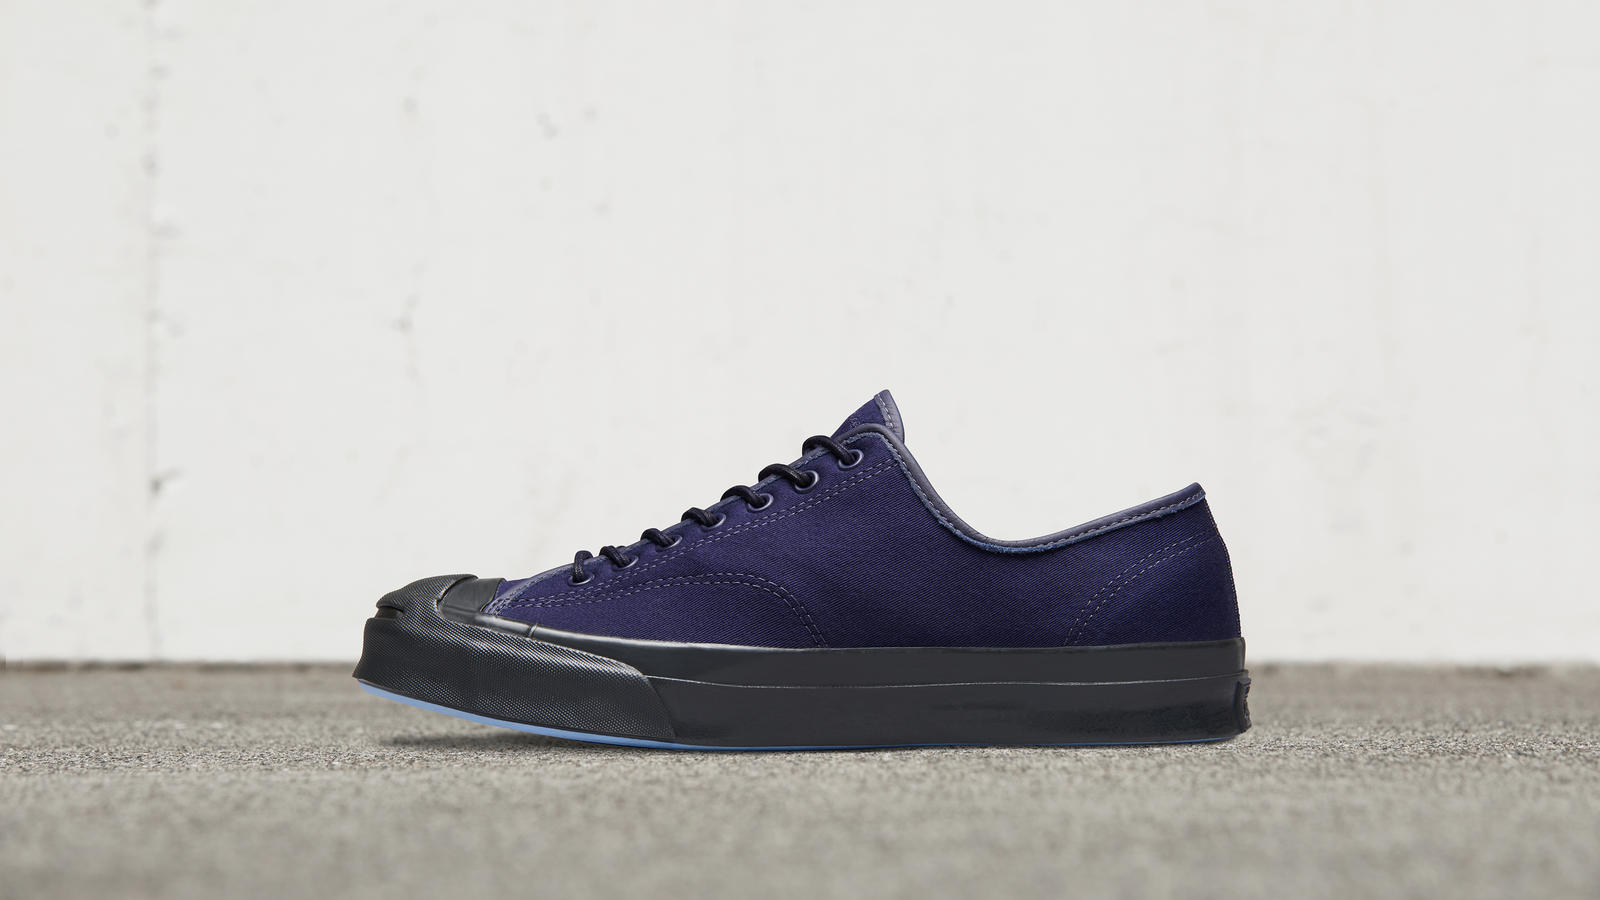 77ce38c9d3fc 160812 converse jpsig canvas profile hd 1600